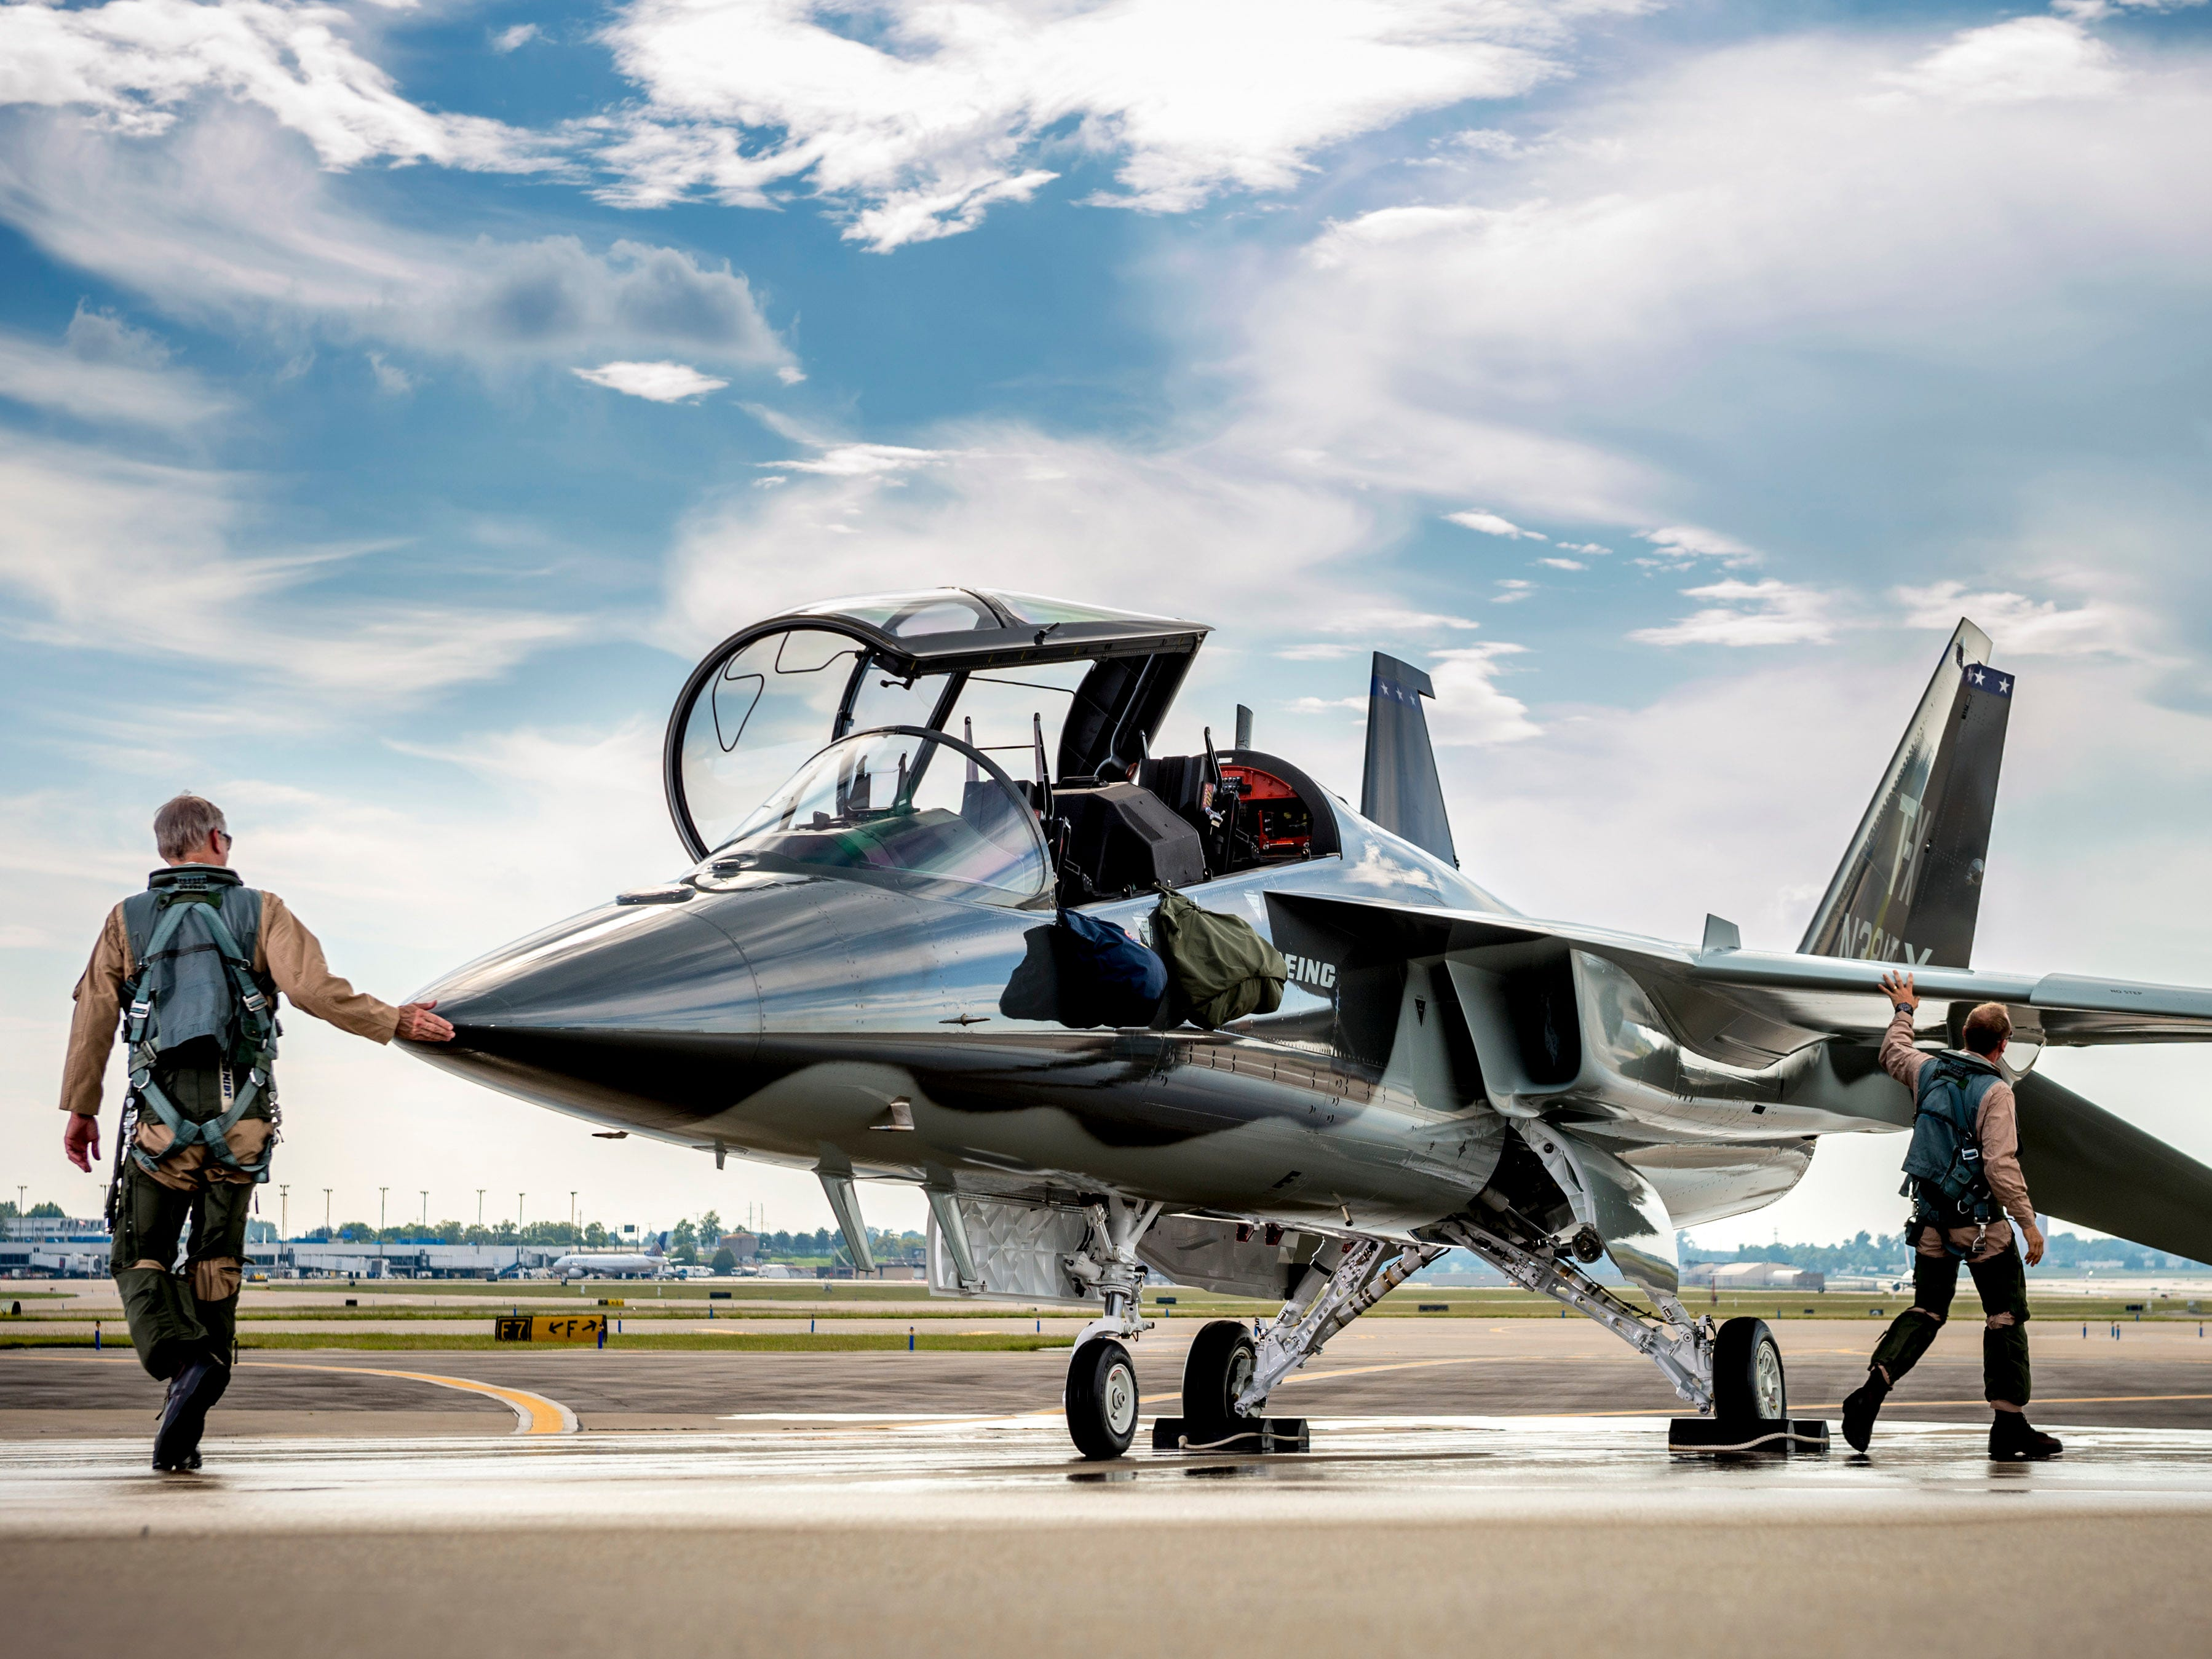 Purdue University announced Wednesday, May 8, 2019, that Saab will build a $37 million plant just west of the West Lafayette campus to do work related to the Boeing T-X, the U.S. Air Force's next generation training jet. The Saab plant is expected to bring 300 jobs.